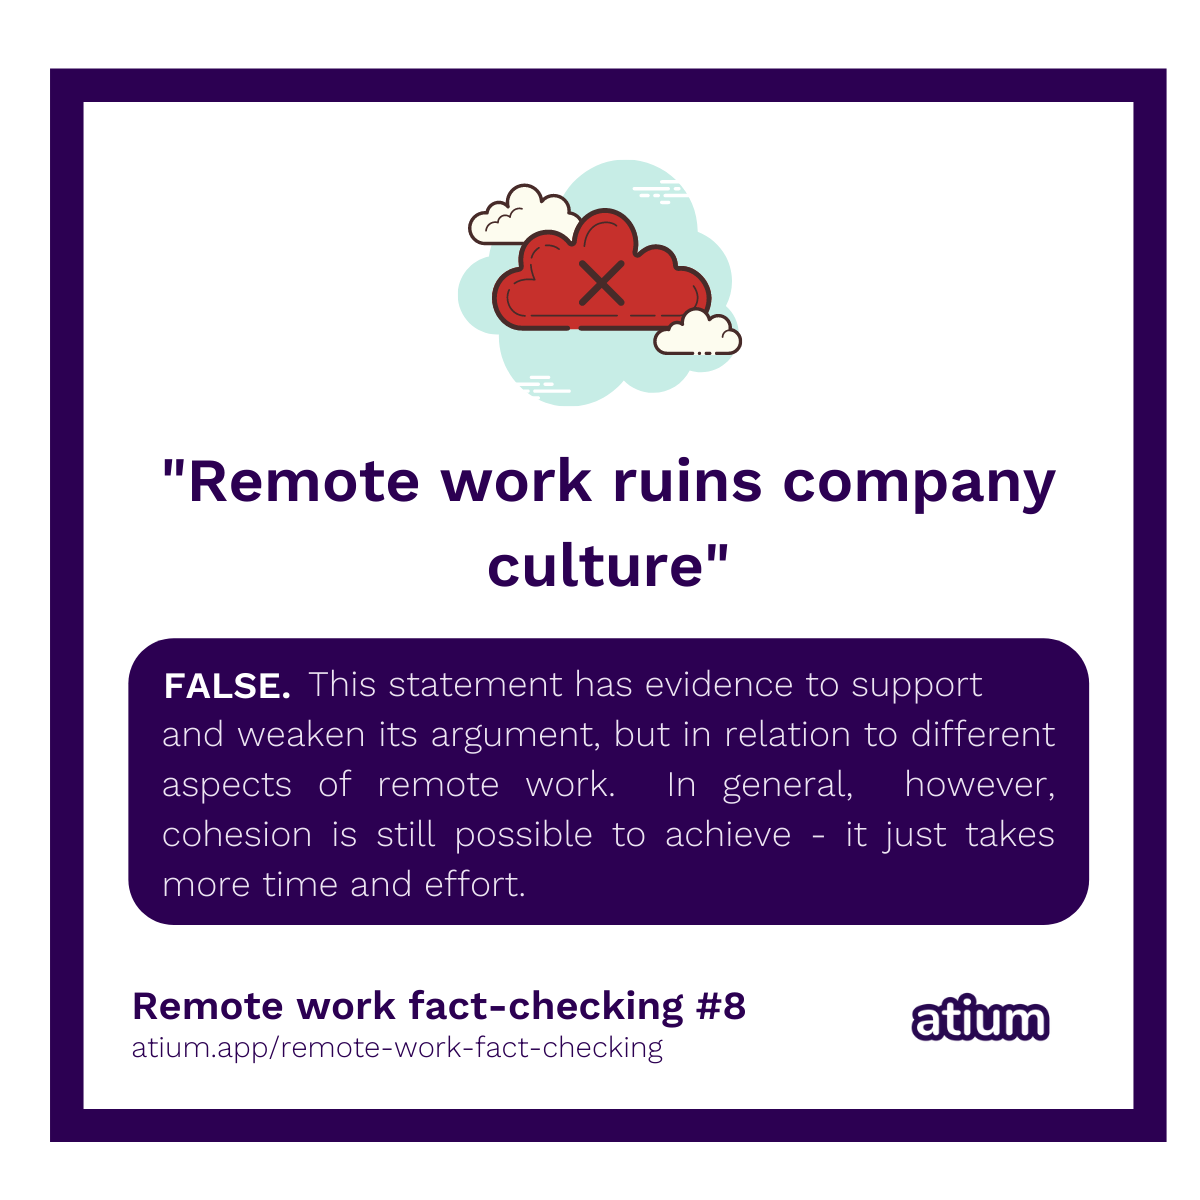 Remote work ruins company culture